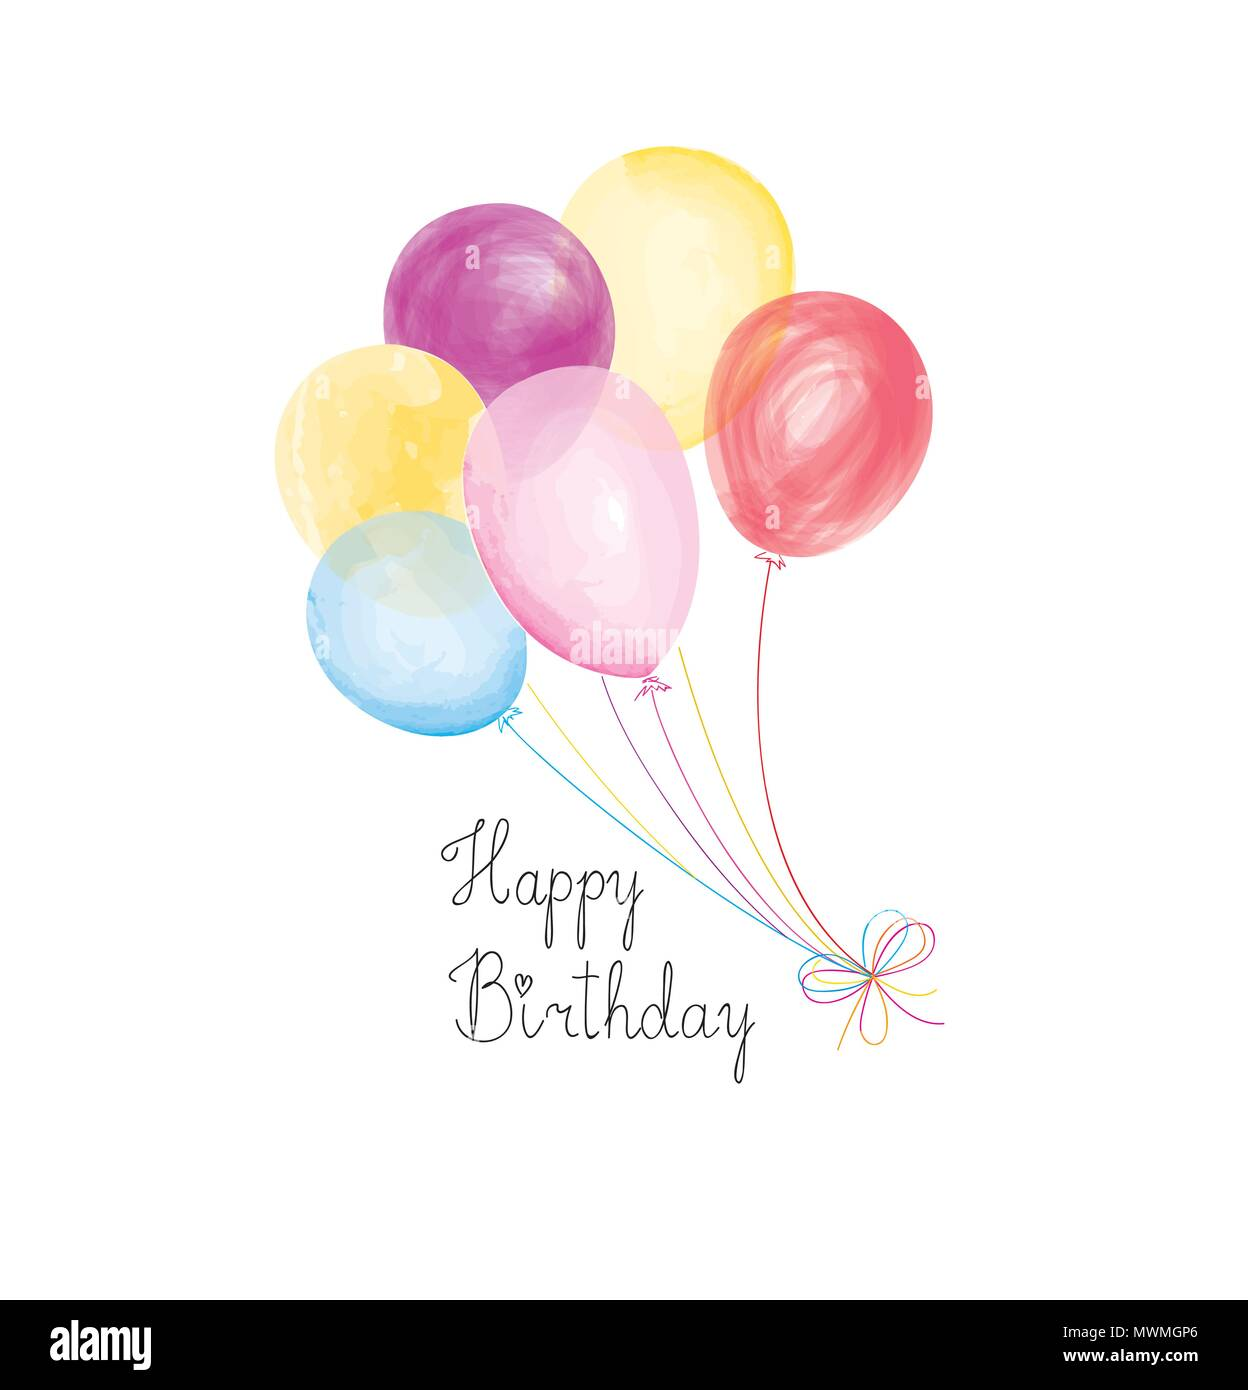 Happy Birthday Greeting Card With Balloons Birthday Balloons With